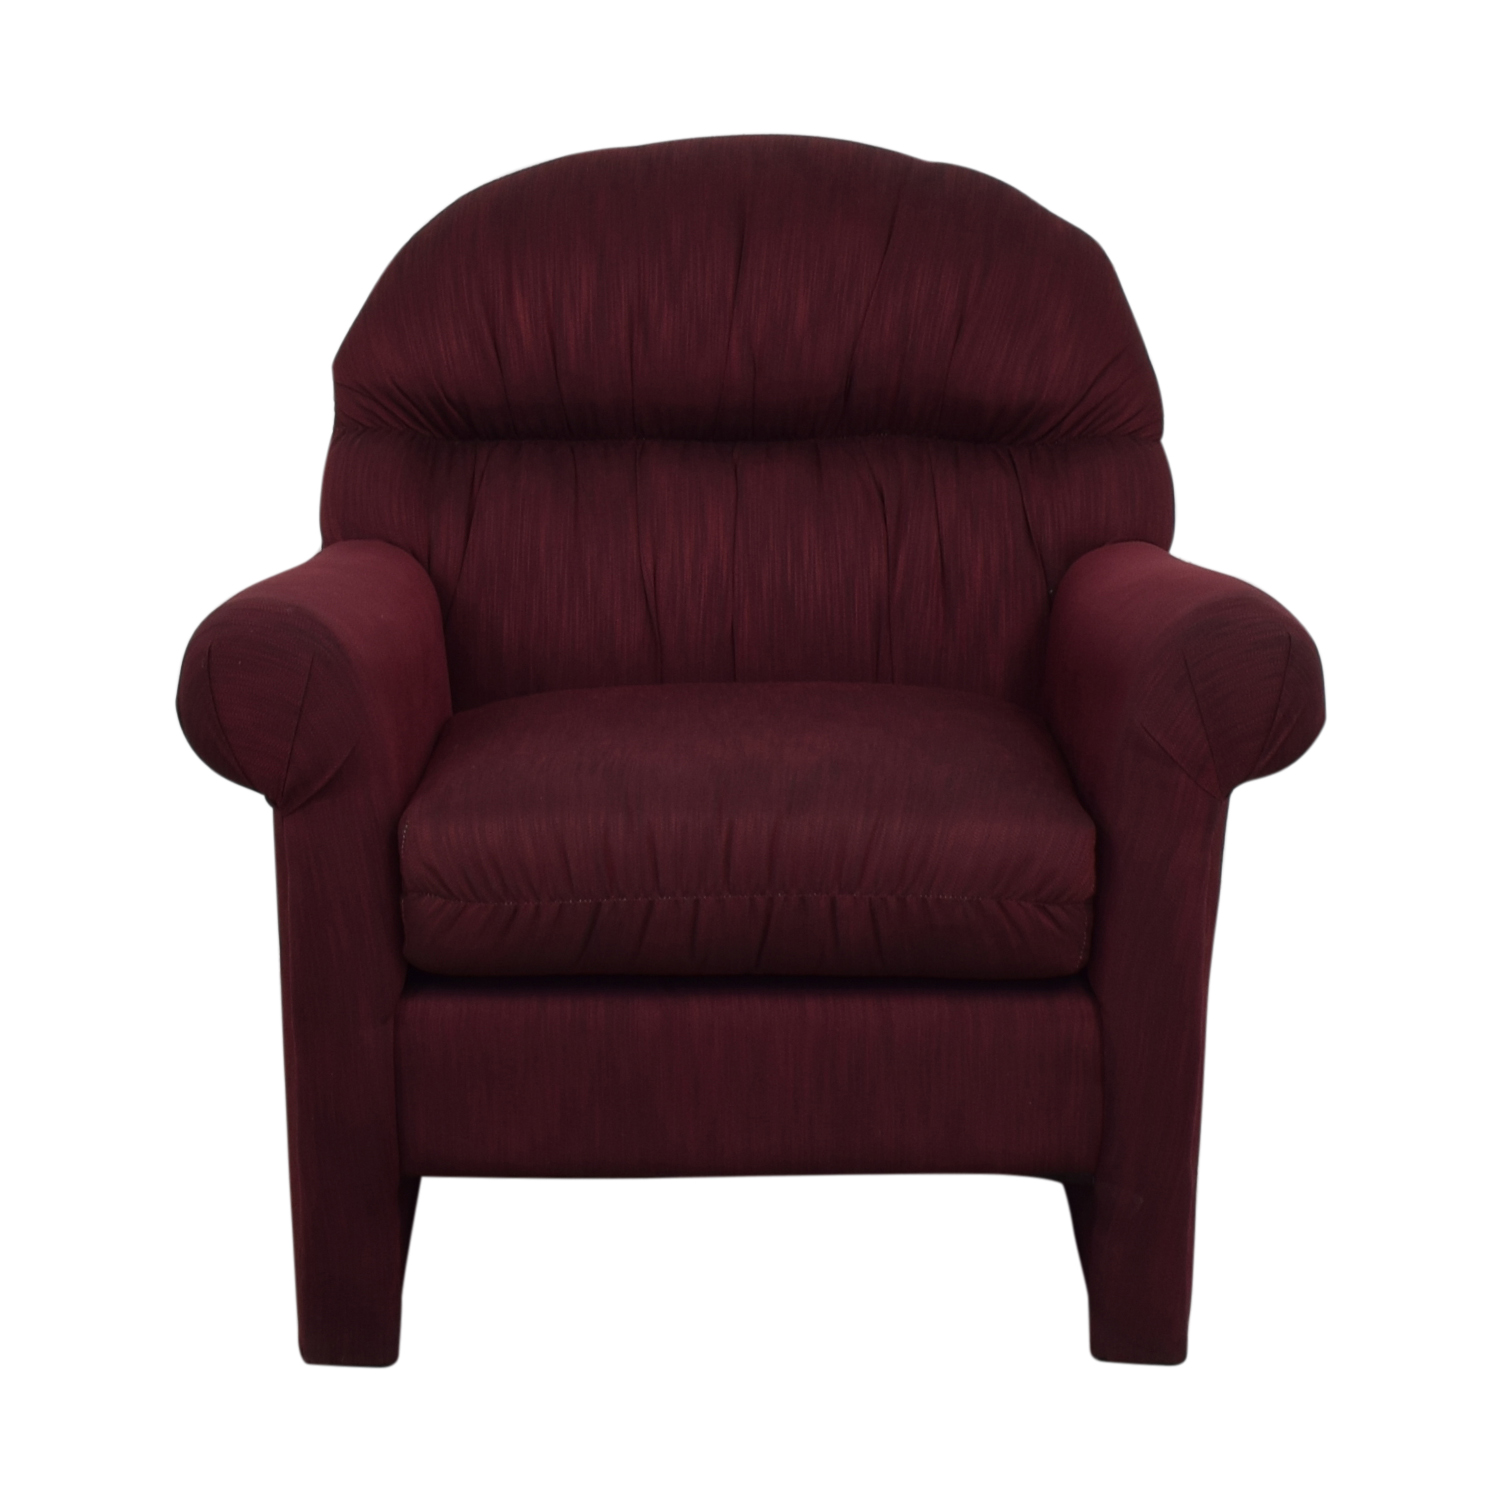 Jennifer Furniture Jennifer Furniture Burgundy Accent Chair dimensions